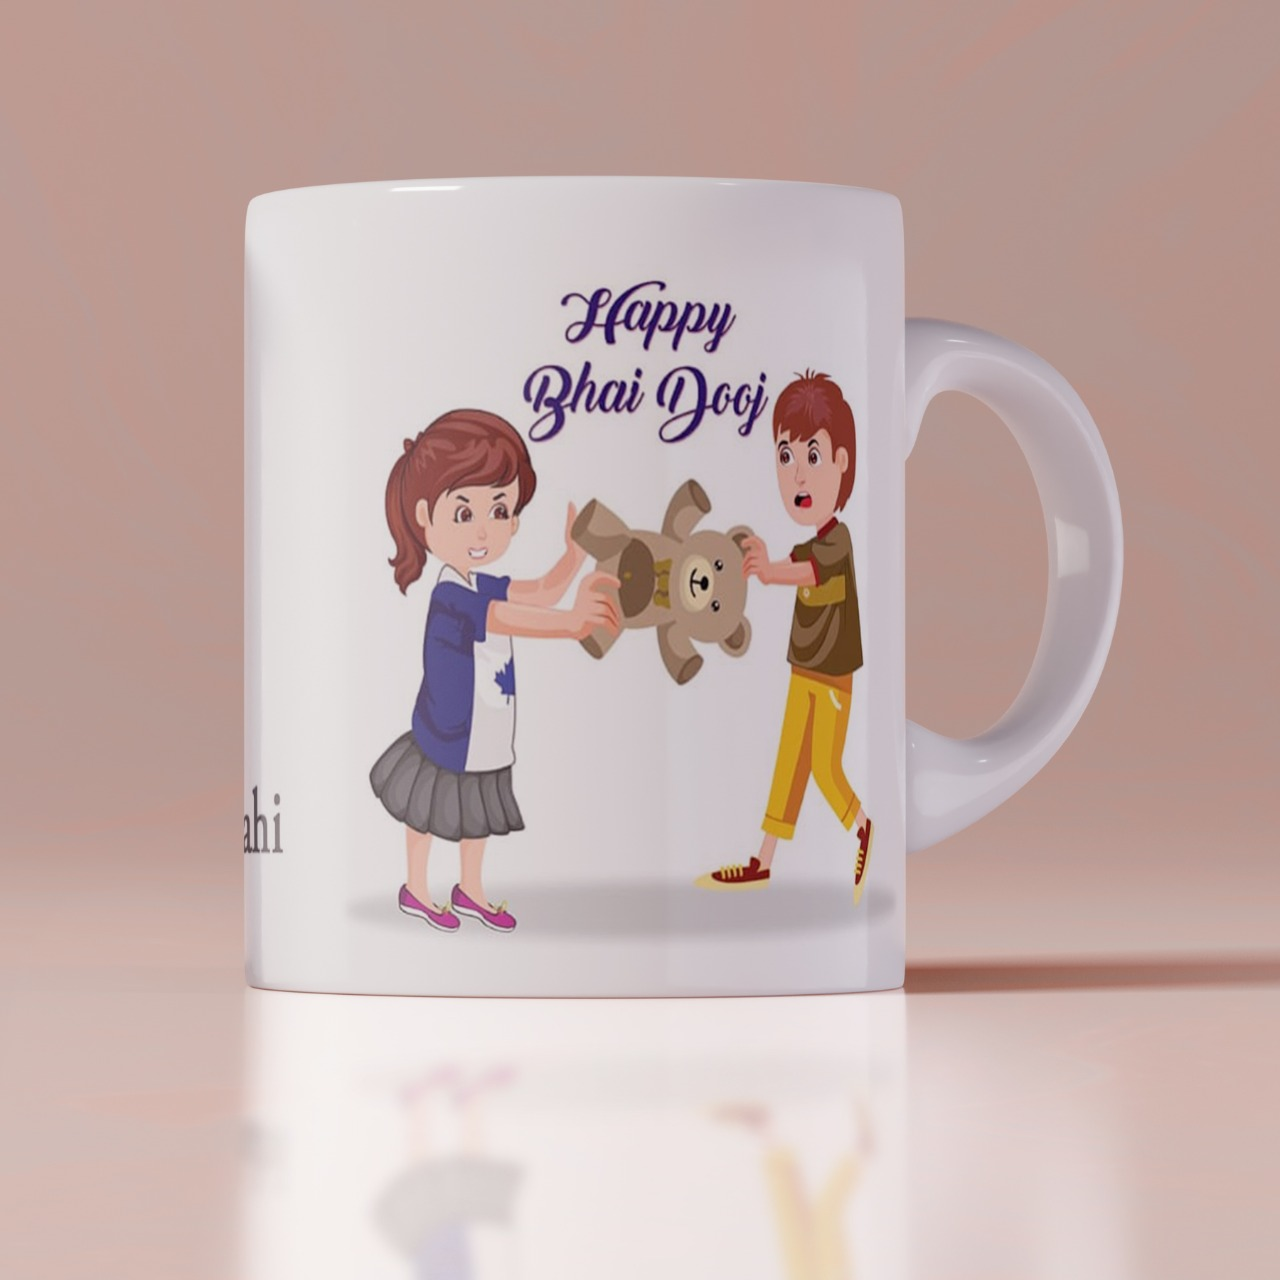 Happy Bhai Dooj Customize Mug